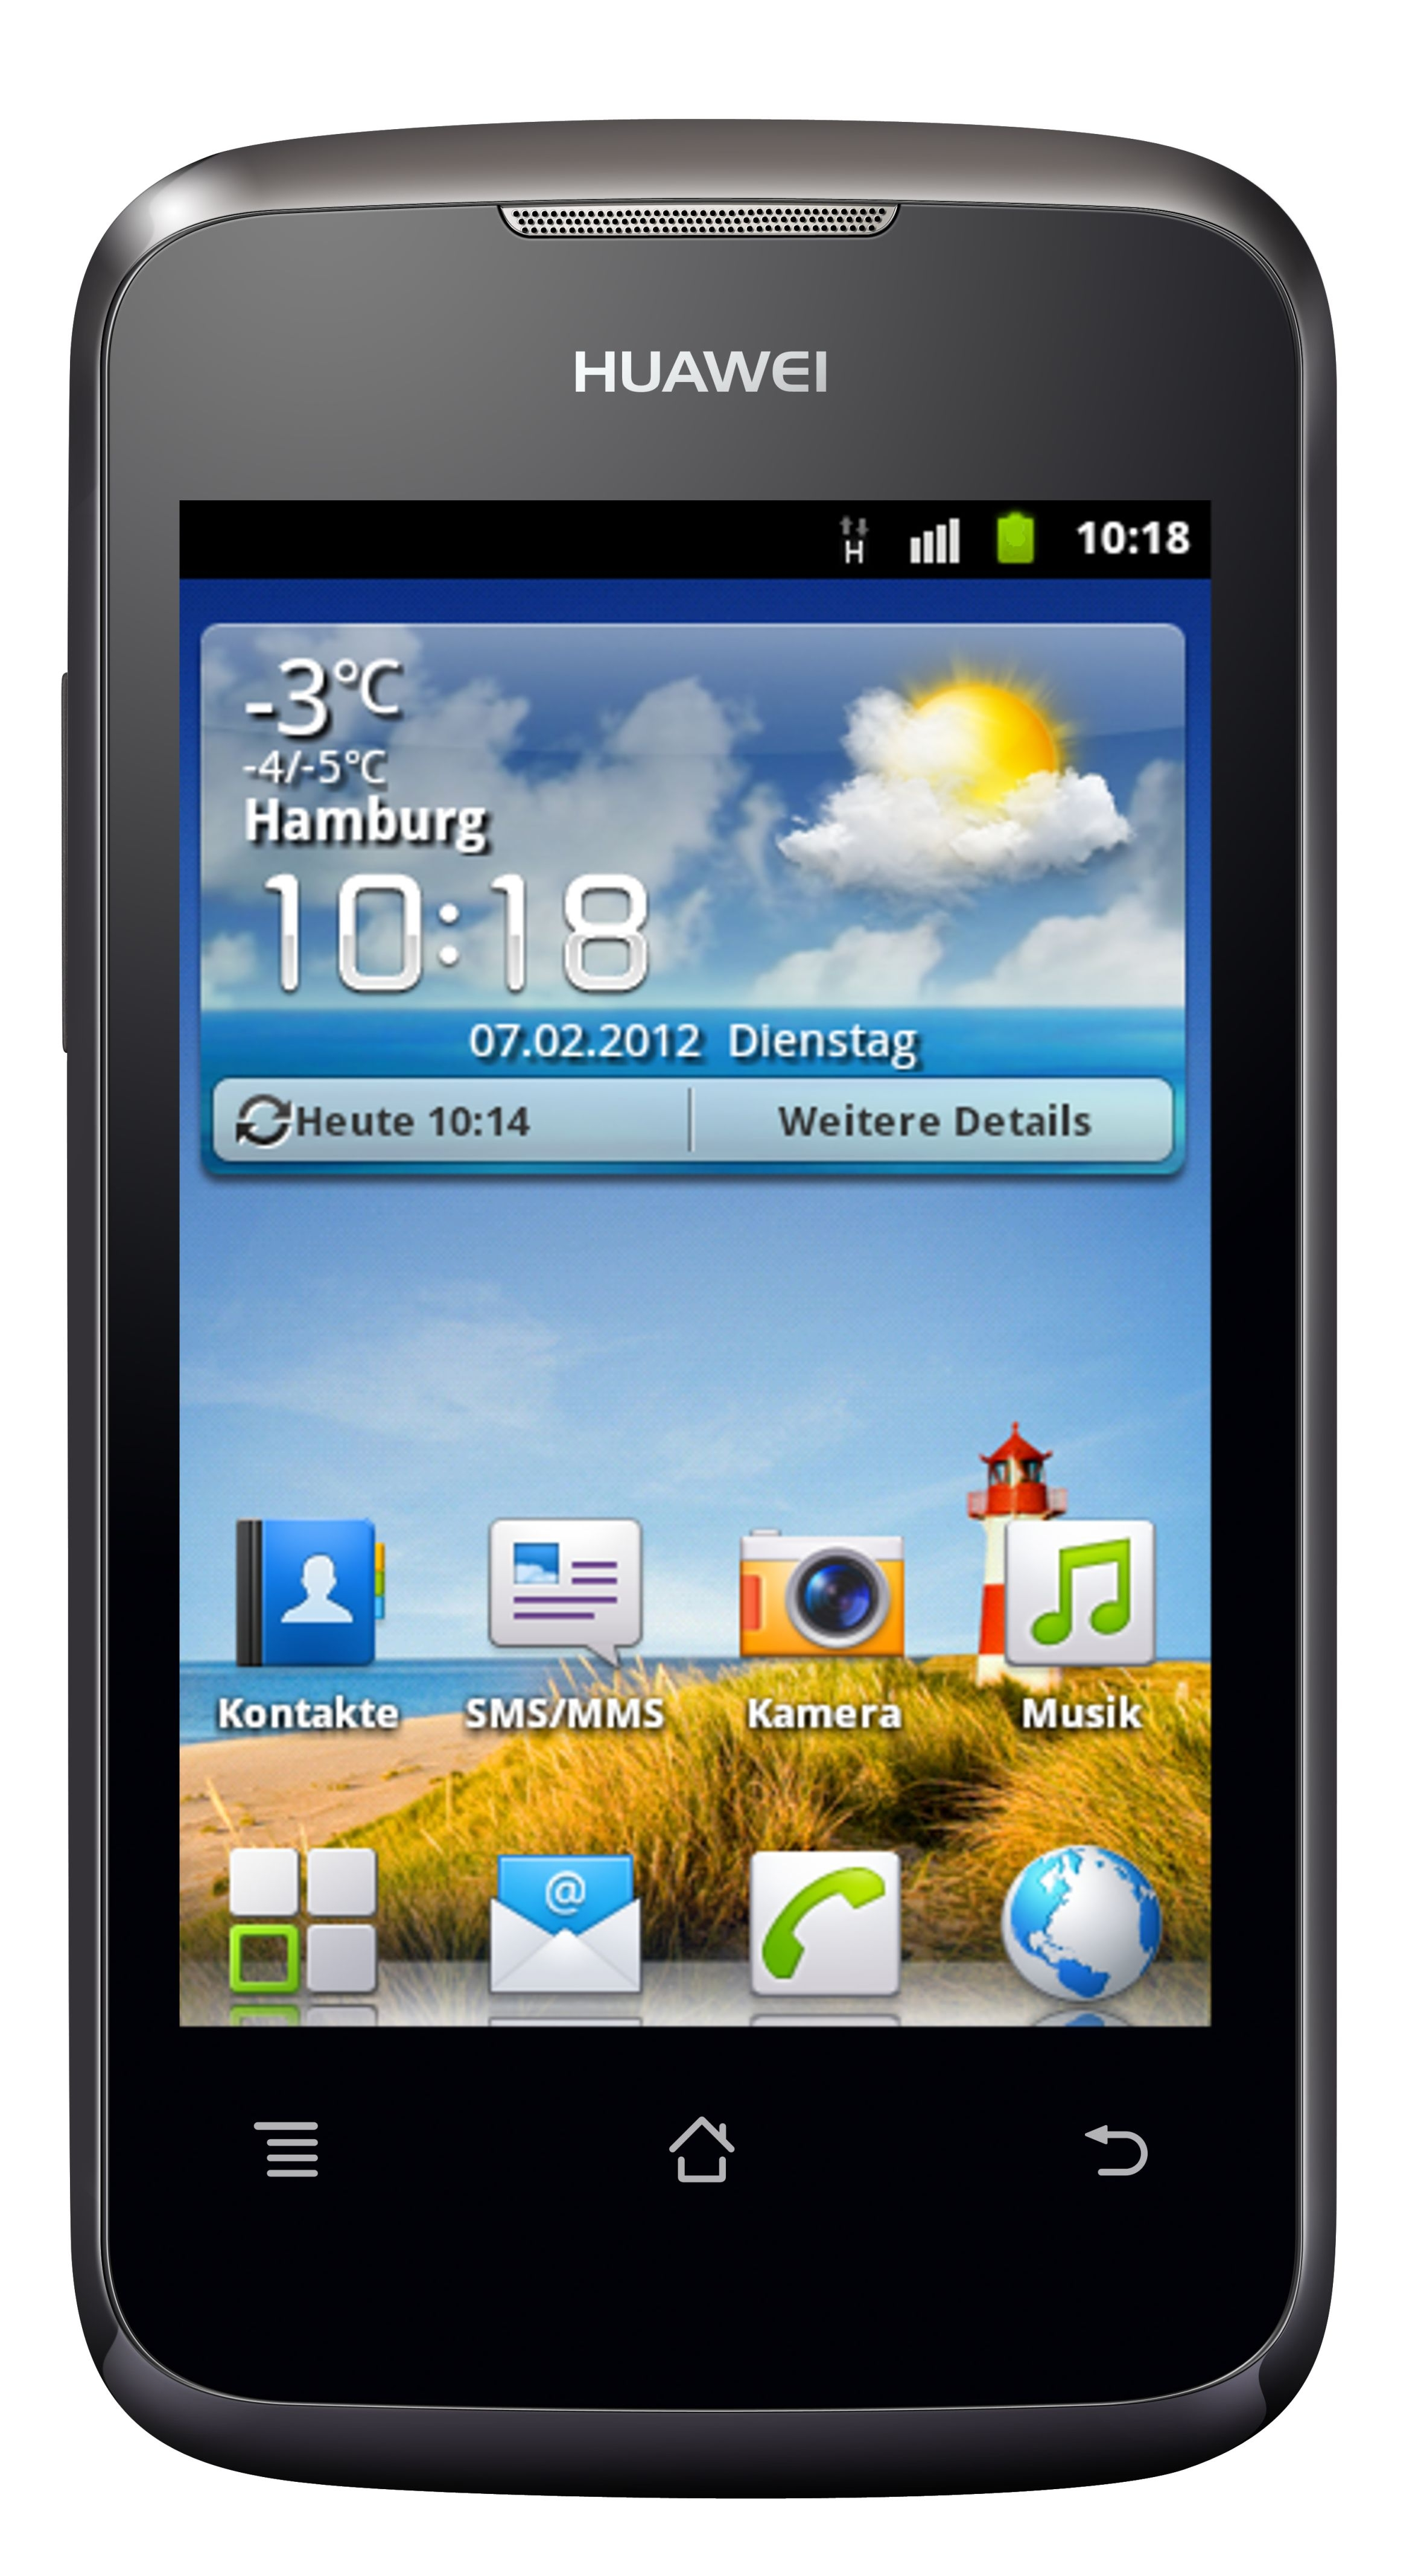 Huawei Ascend Y200 - nowy smartphone z 1 GHz, Android 2.3 za 100 euro